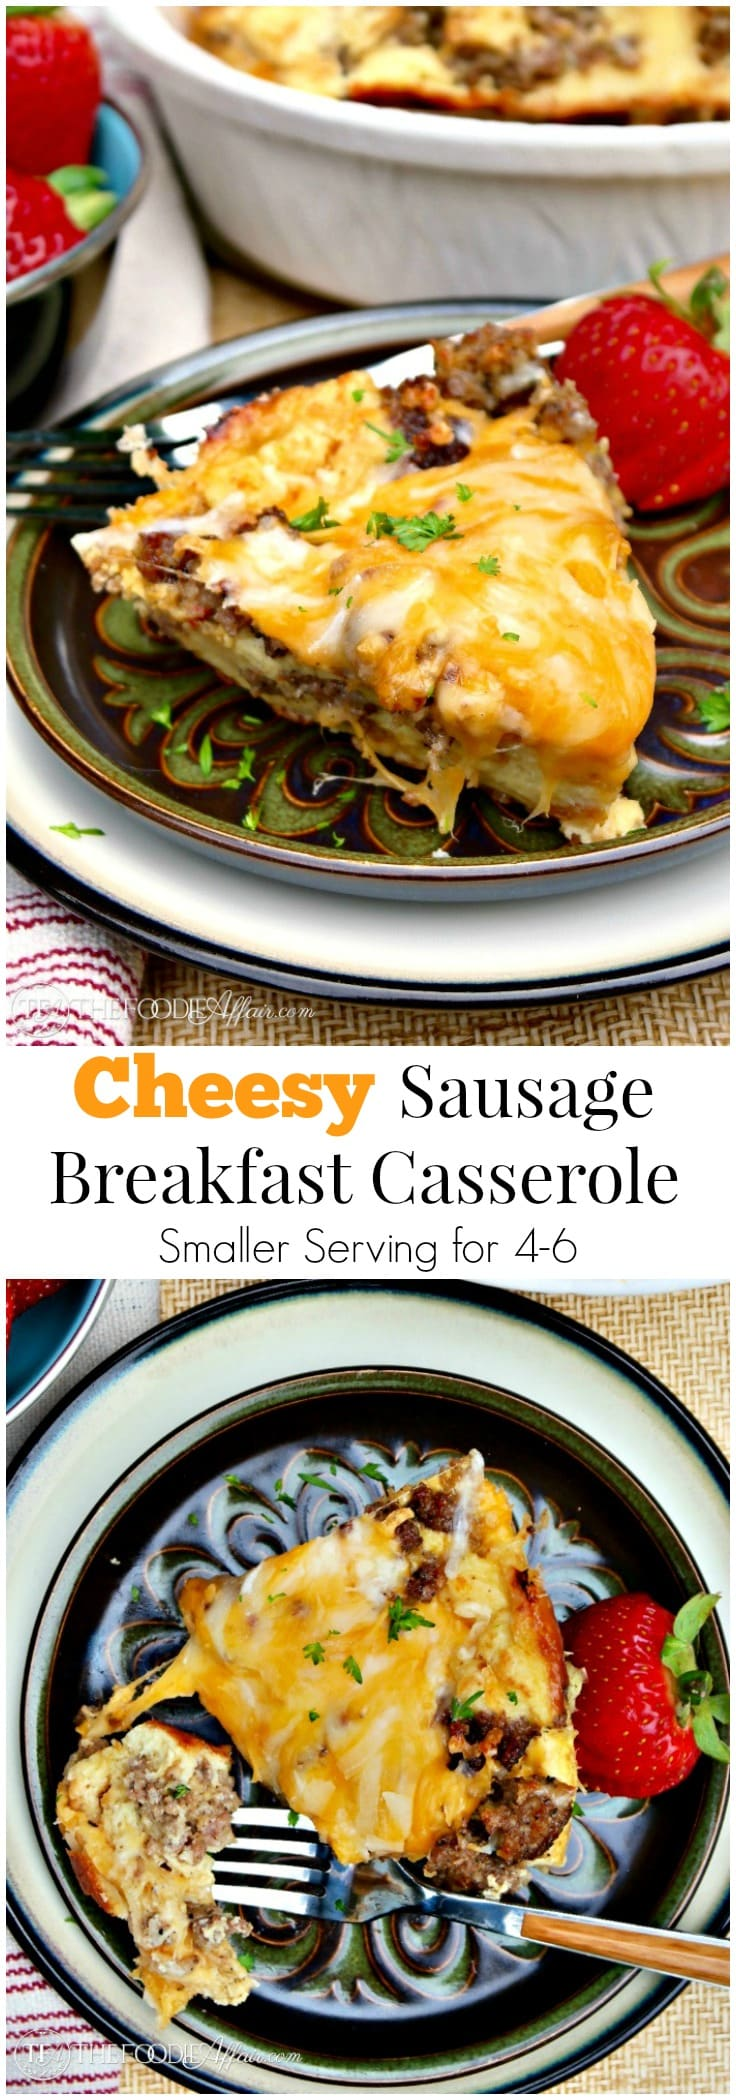 This Cheesy Sausage Breakfast Casserole is the perfect addition to ...